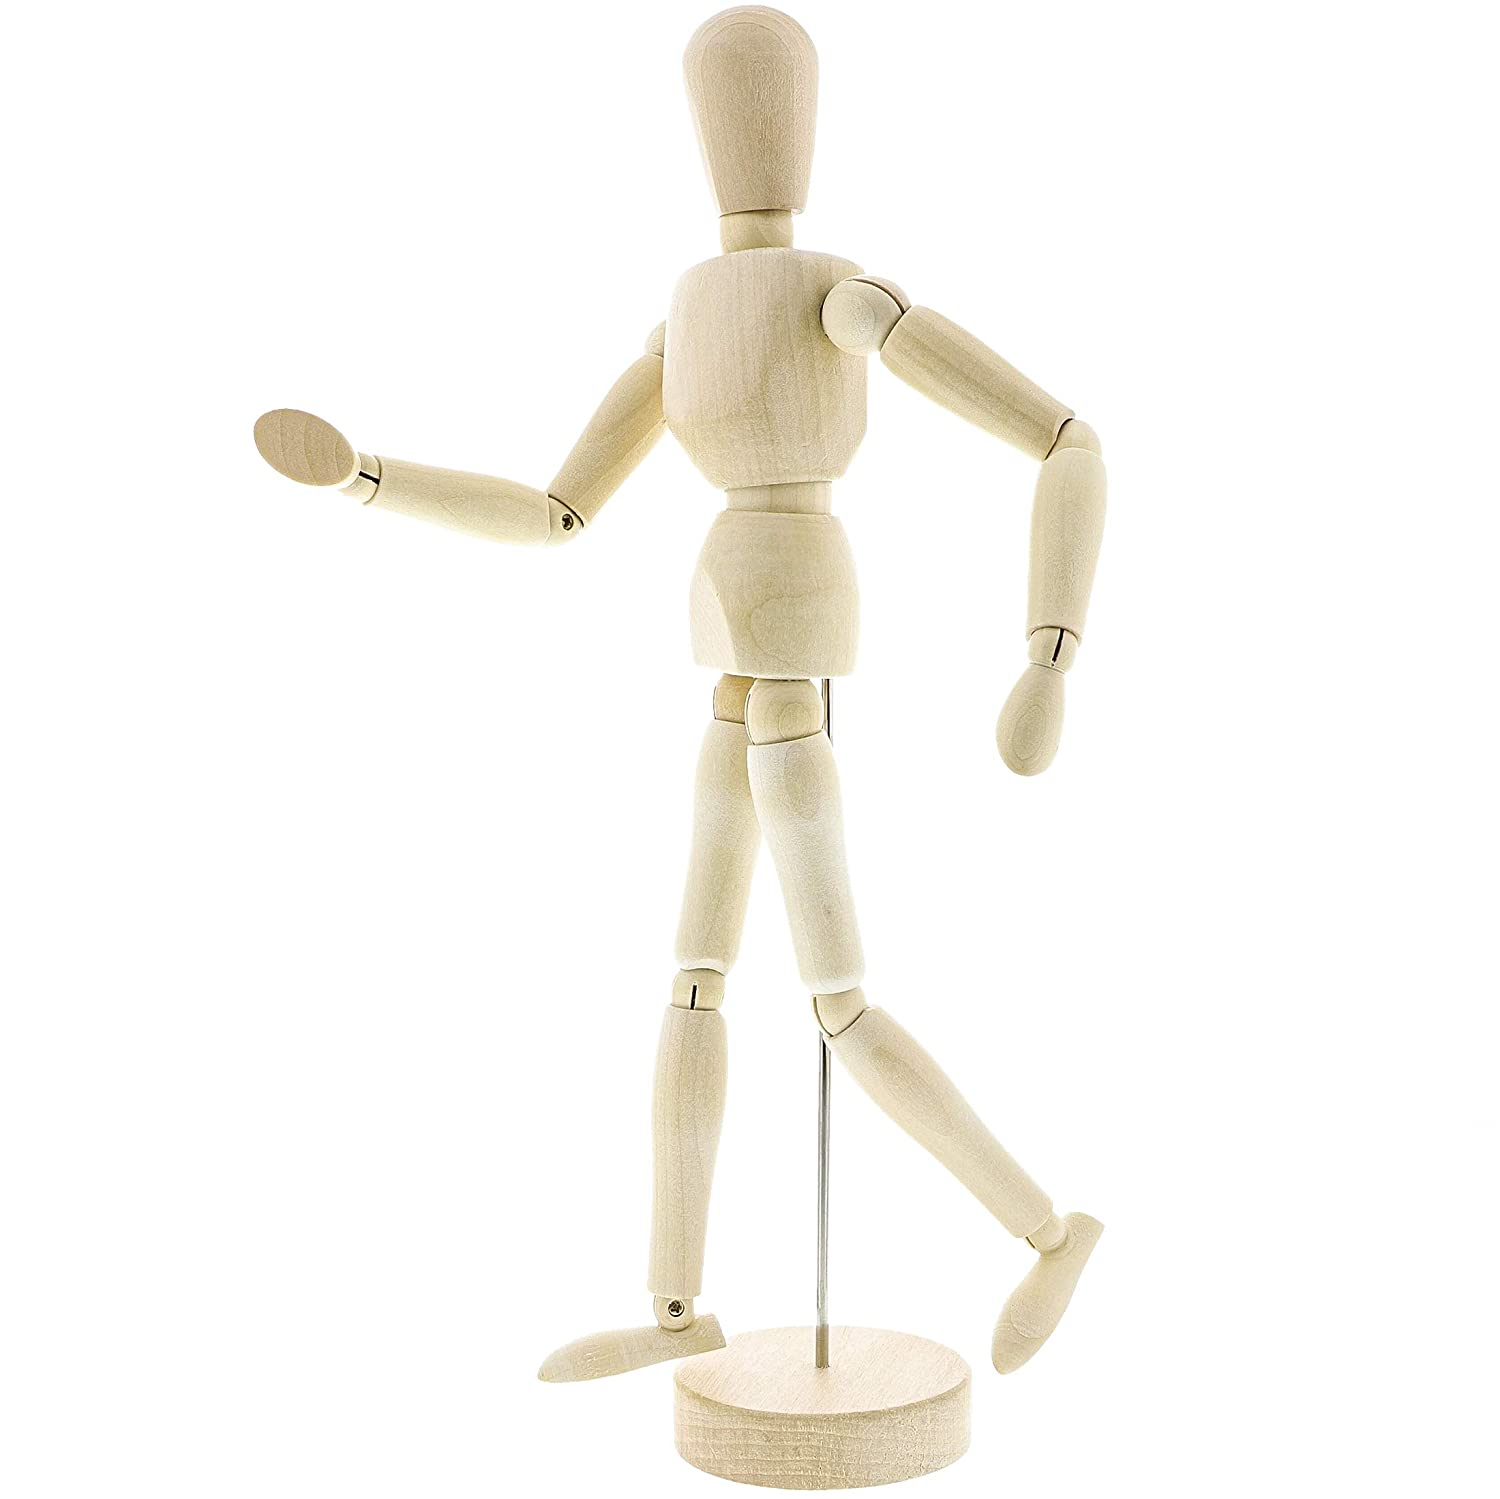 Le Juvo 13 Inch Jointed Posable Wooden Manikin Figure Model for Artist  Drawing and Sketching